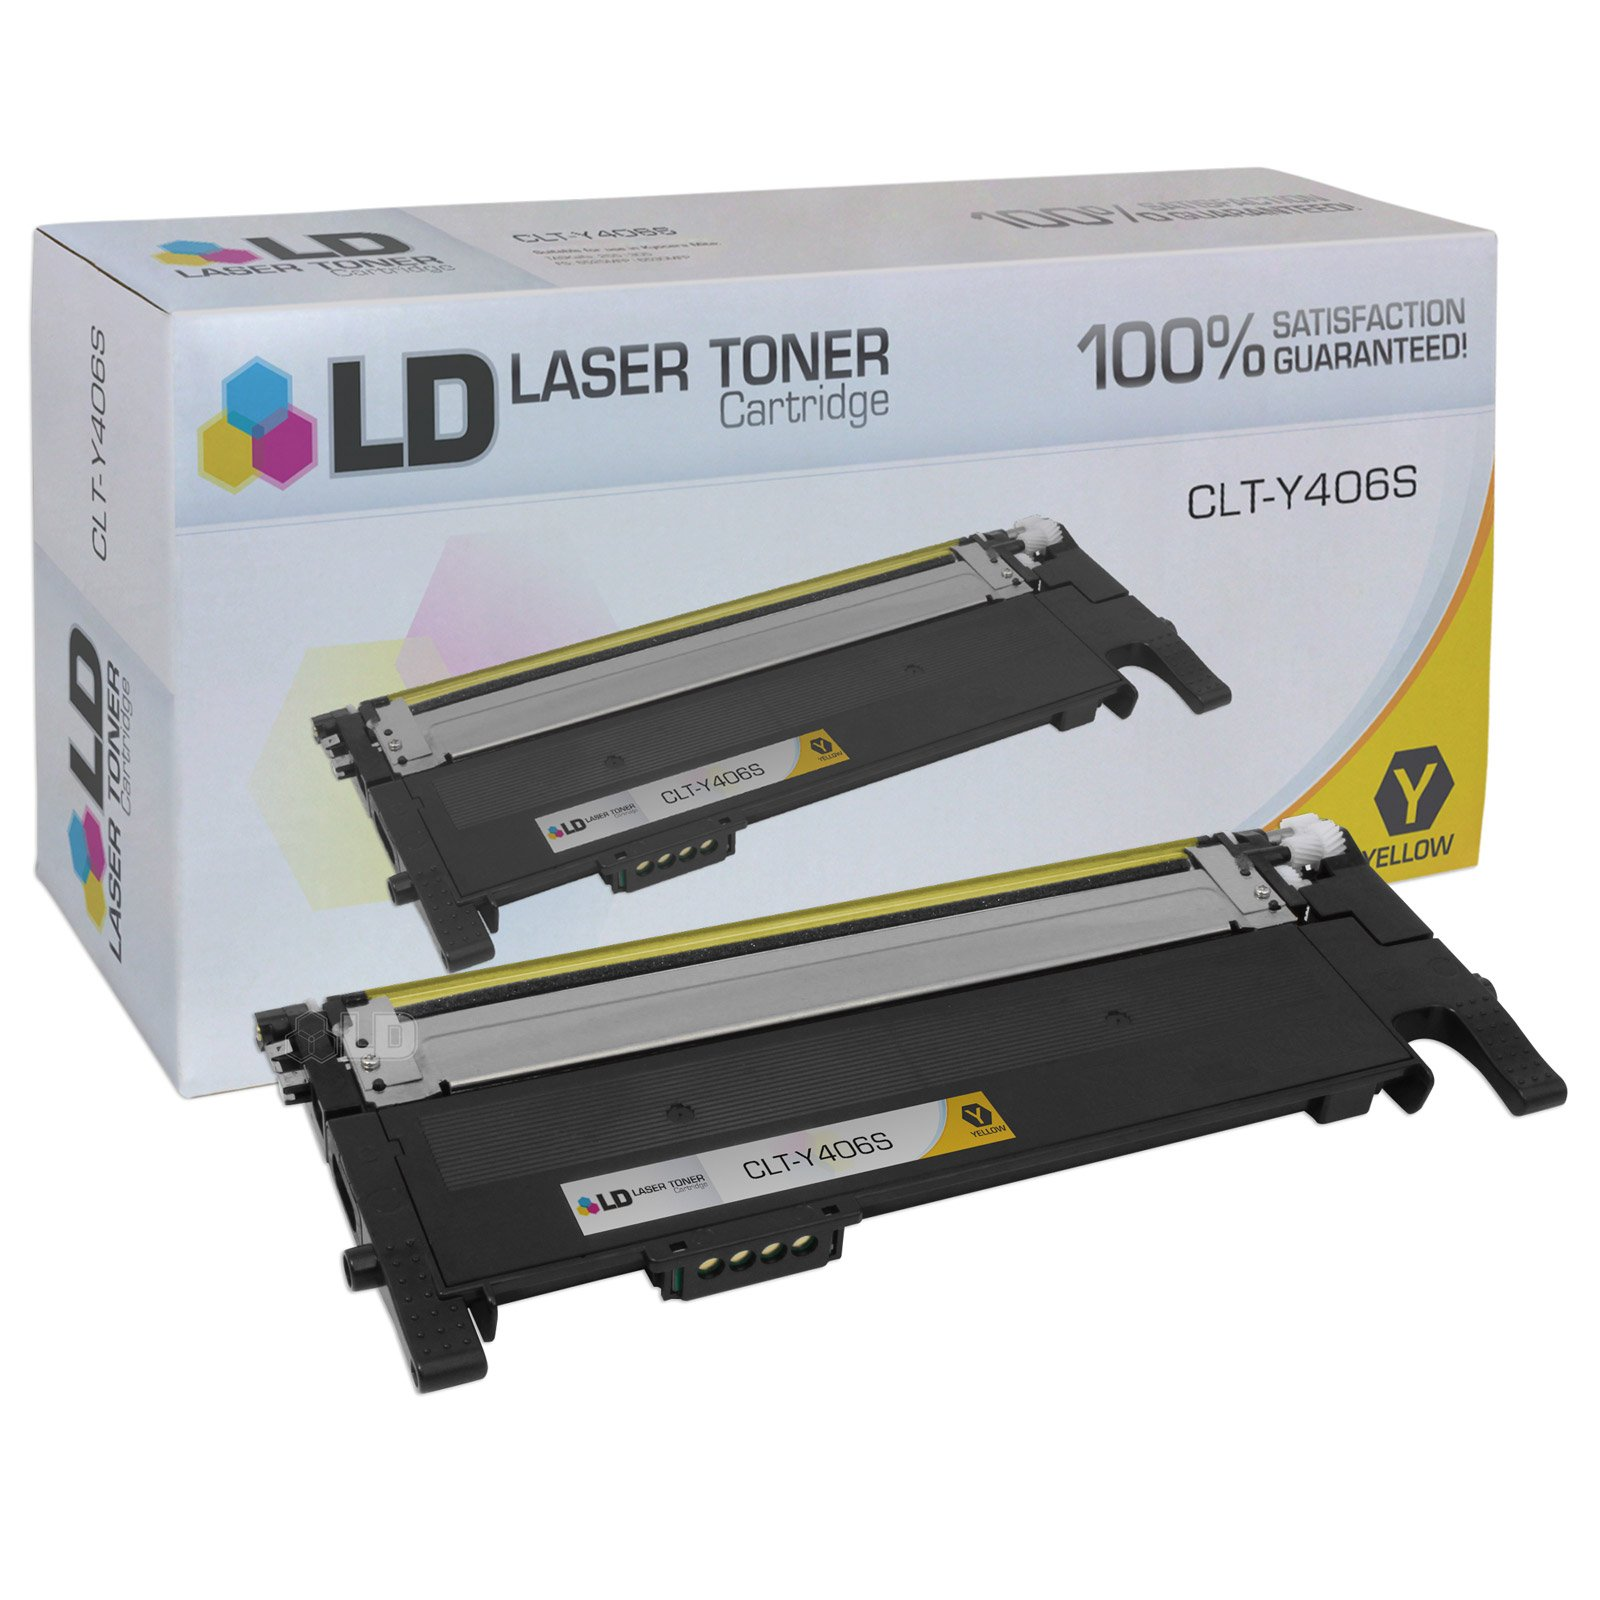 LD Compatible Toner Cartridge Replacement for Samsung CLT-Y406S (Yellow)